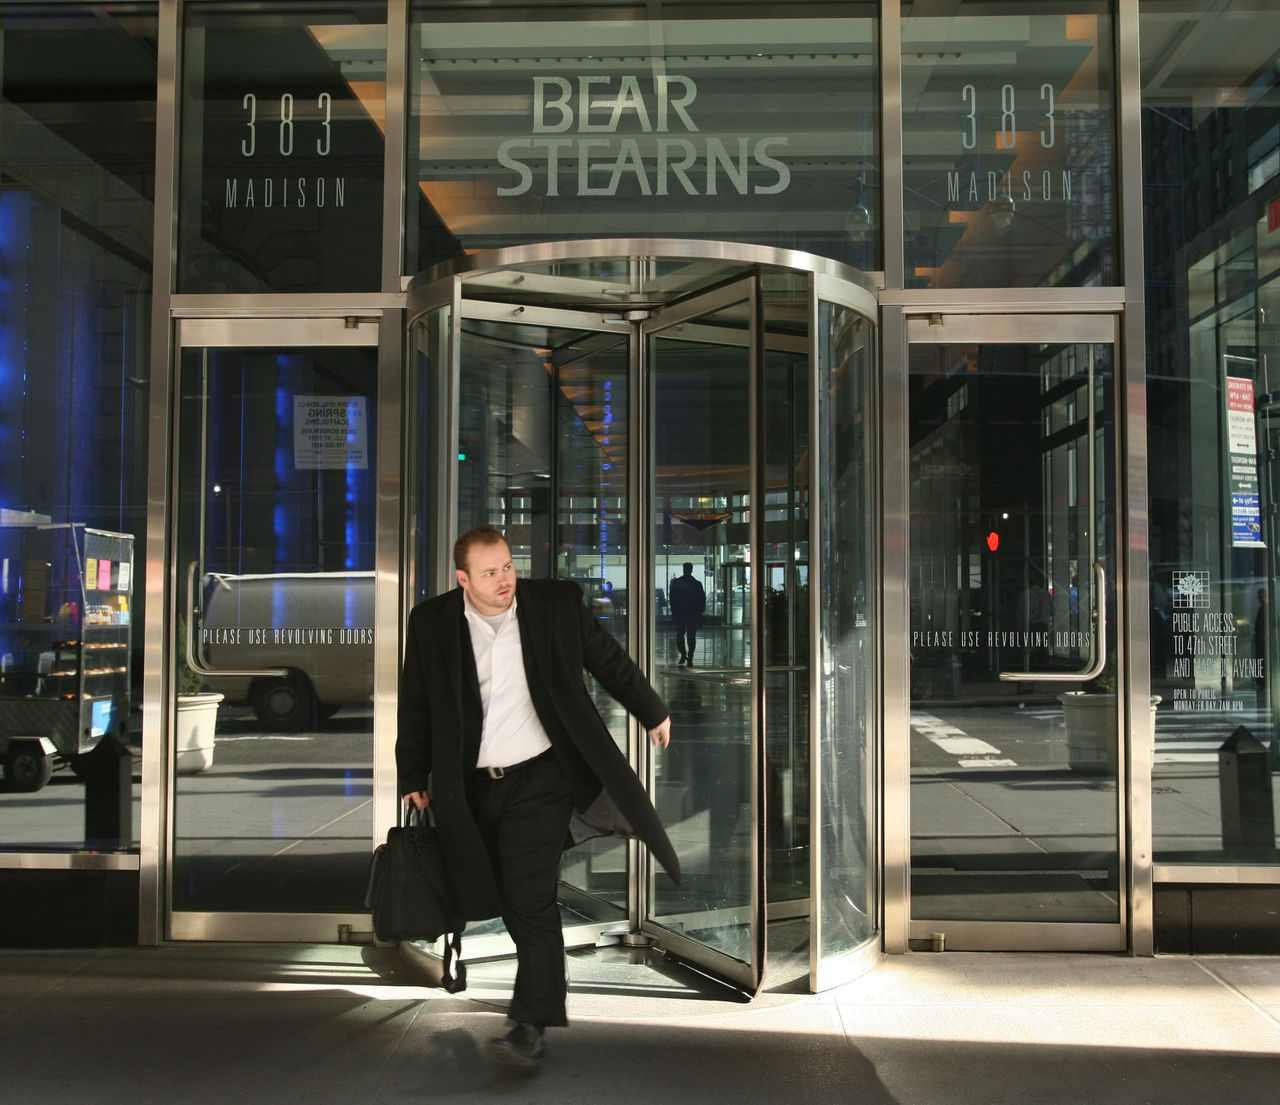 Een medewerker Bear Stearns verlaat het kantoor in New York. De bank kreeg gisteren een noodkrediet van de centrale bank. Foto AP A man walks out of Bear Stearns in New York on Friday, March 14, 2008. The Federal Reserve invoked a rarely used Depression-era procedure Friday to bolster troubled Bear Stearns Cos. and said it will provide even more help to combat a serious credit crisis. JPMorgan Chase is providing an undisclosed amount of secured funding to Bear for 28 days, backstopped by the Federal Reserve Bank of New York. (AP Photo/Mark Lennihan)